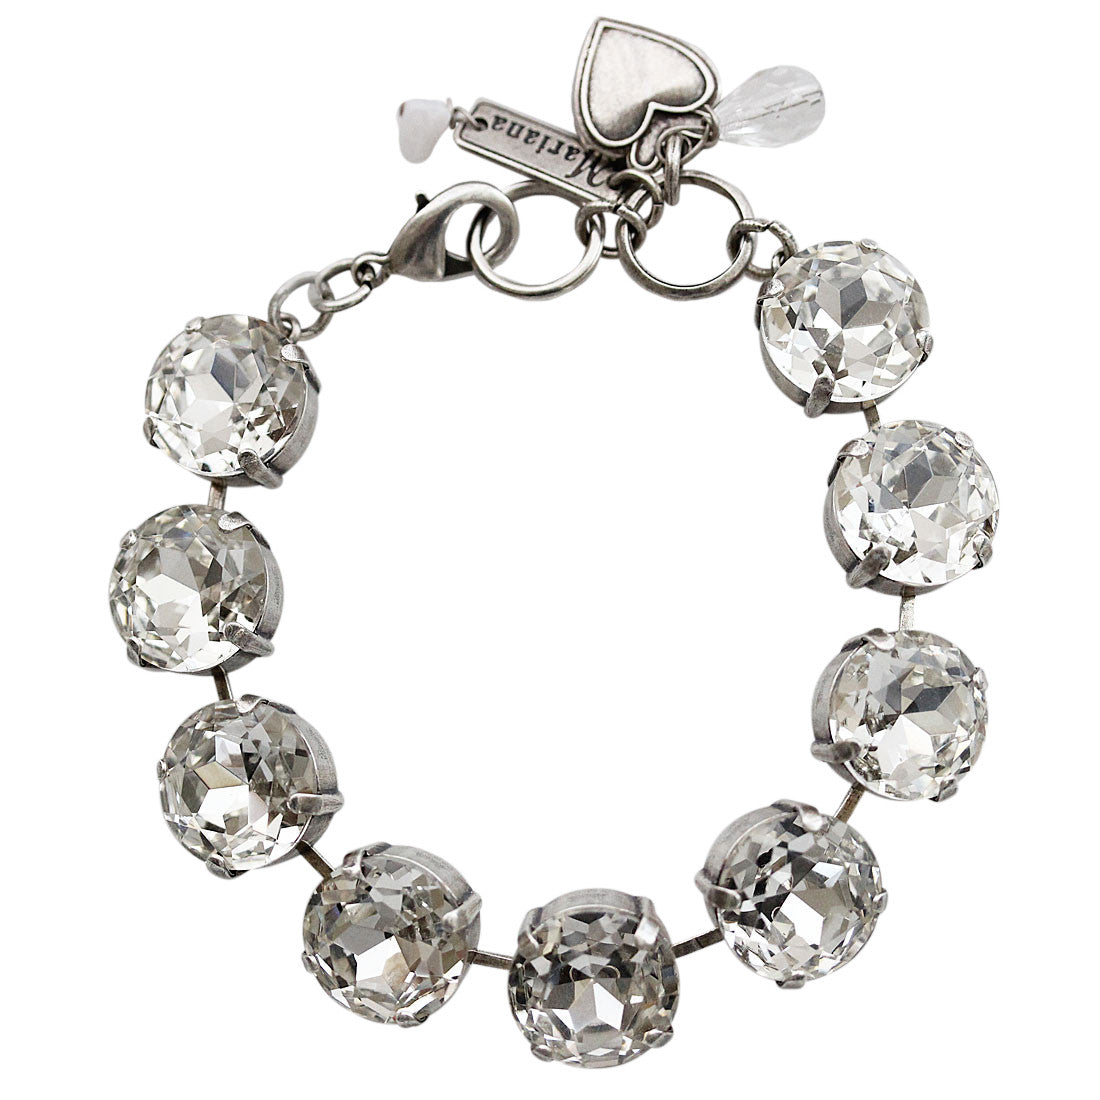 "Mariana Silver Plated Statement Classic Large Shapes Swarovski Crystal Bracelet, 7"" On A Clear Day 4438 001001"